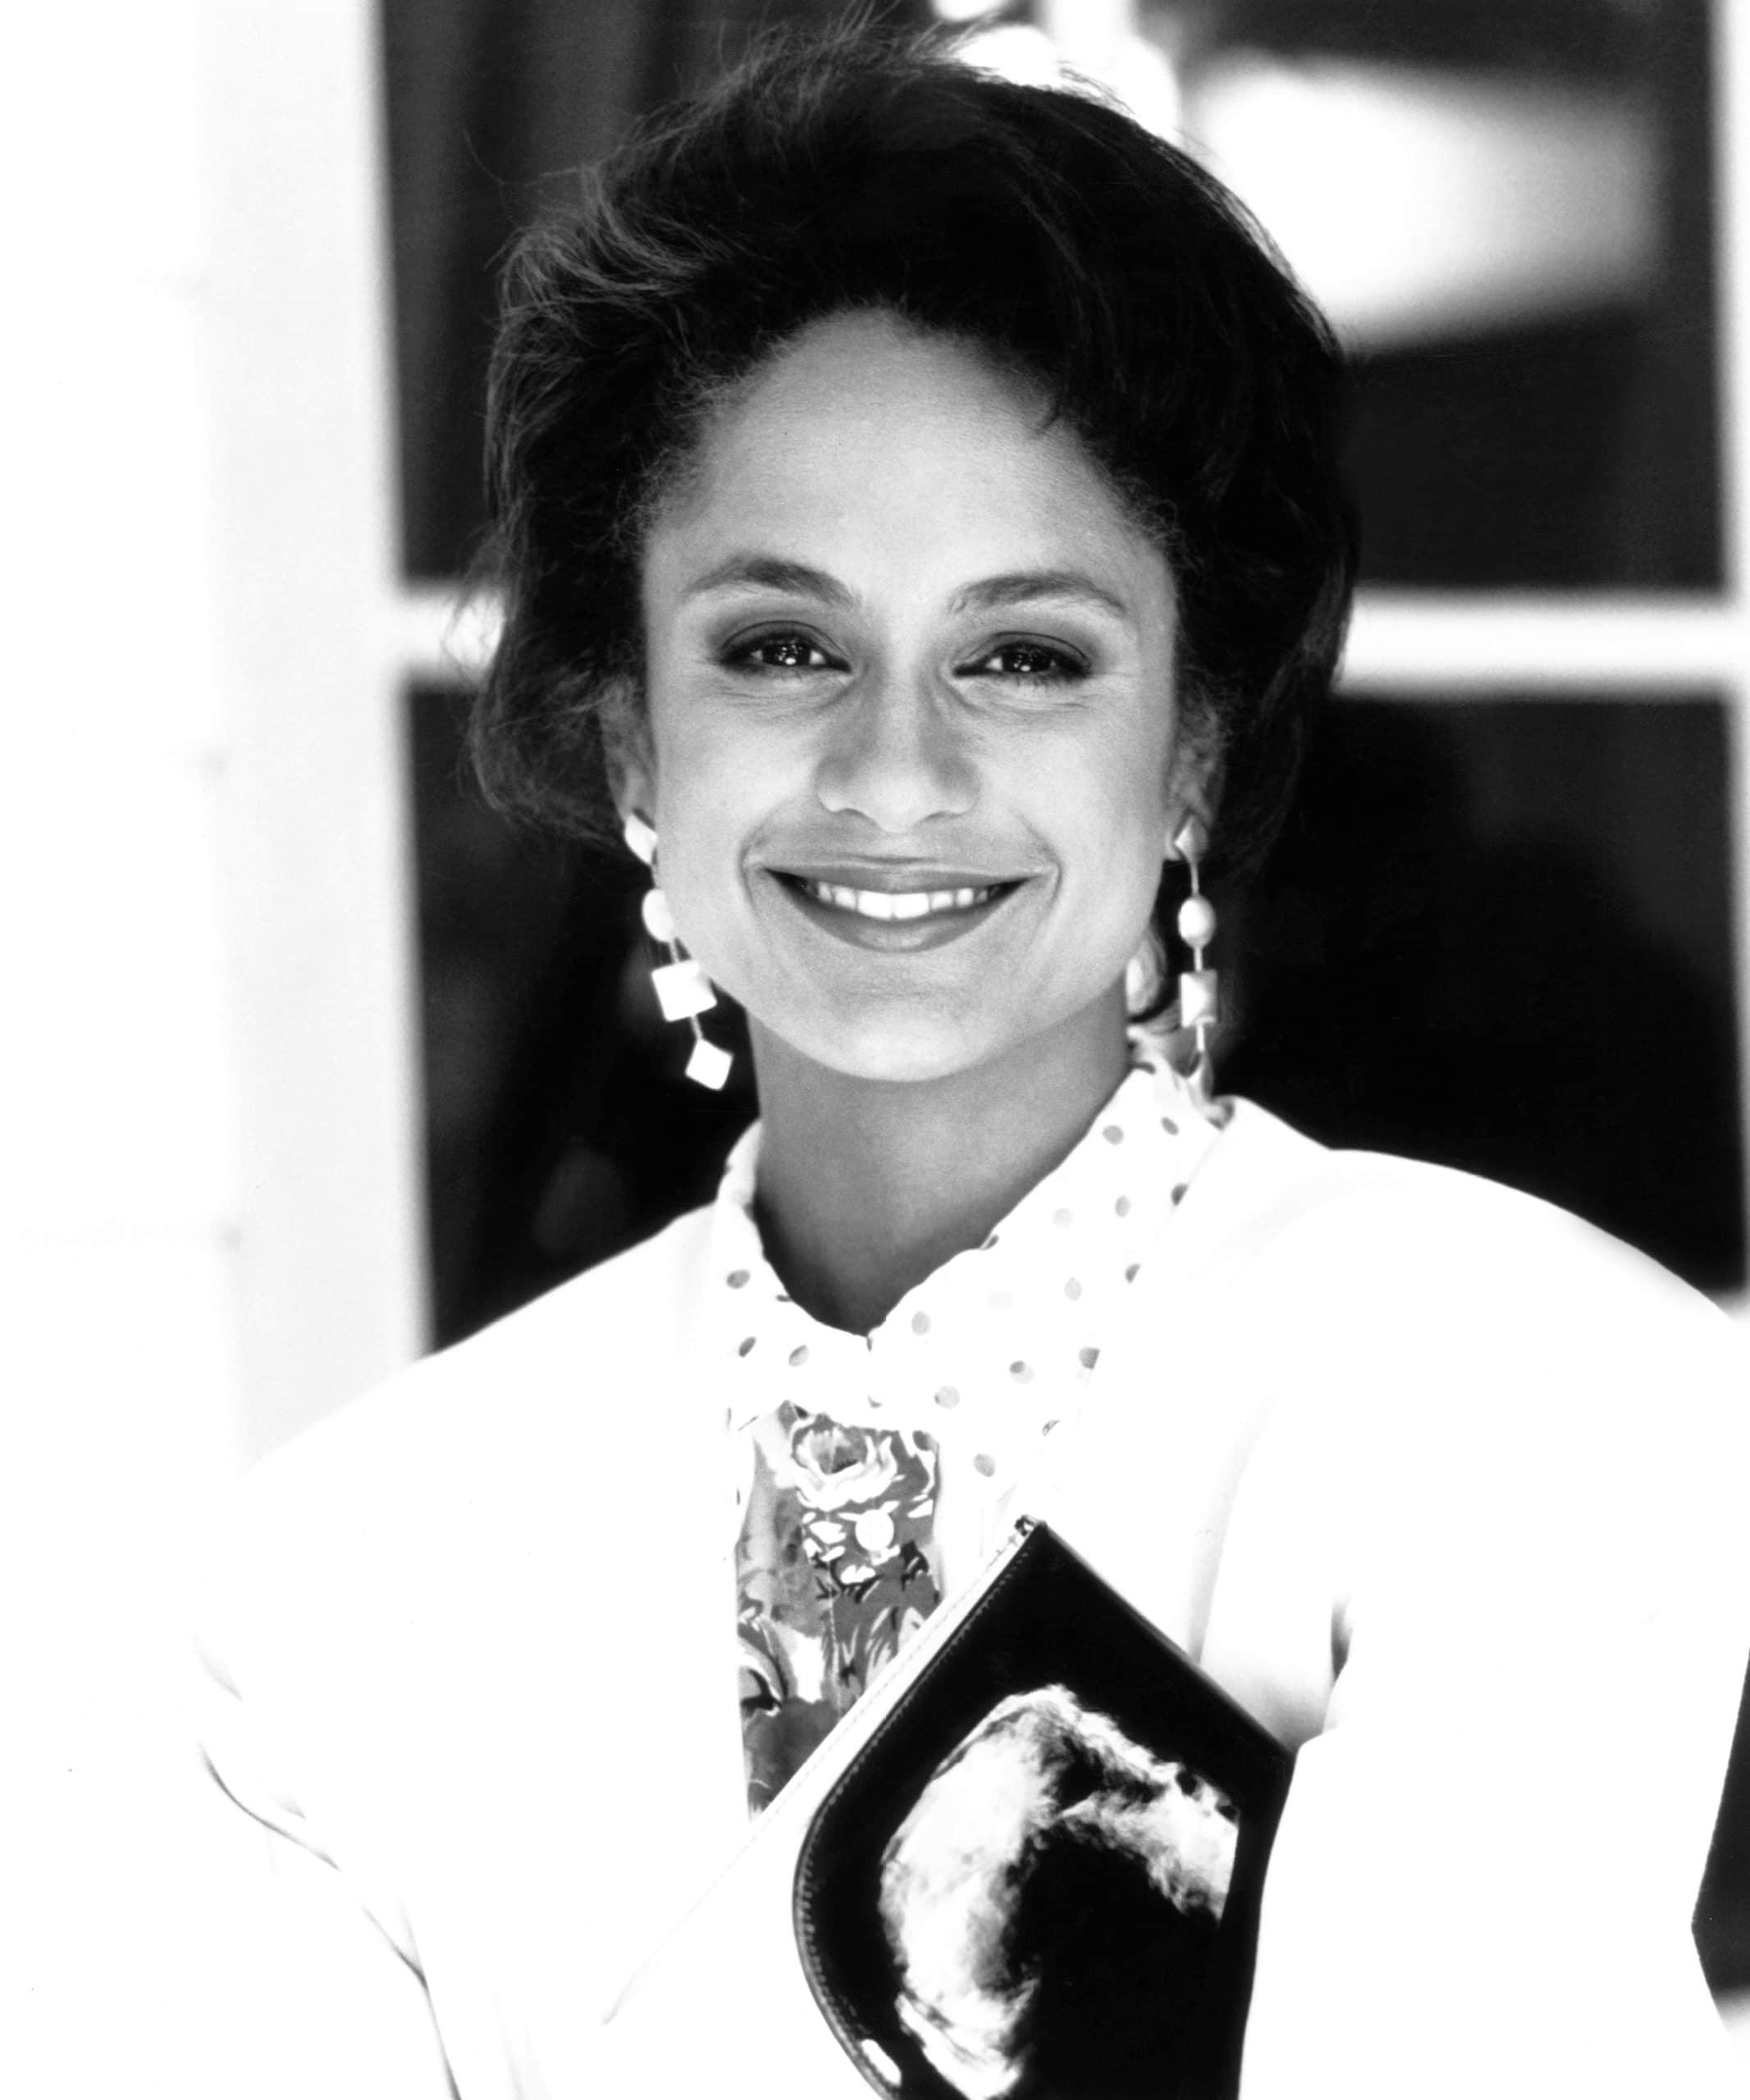 anne-marie johnson in the heat of the night